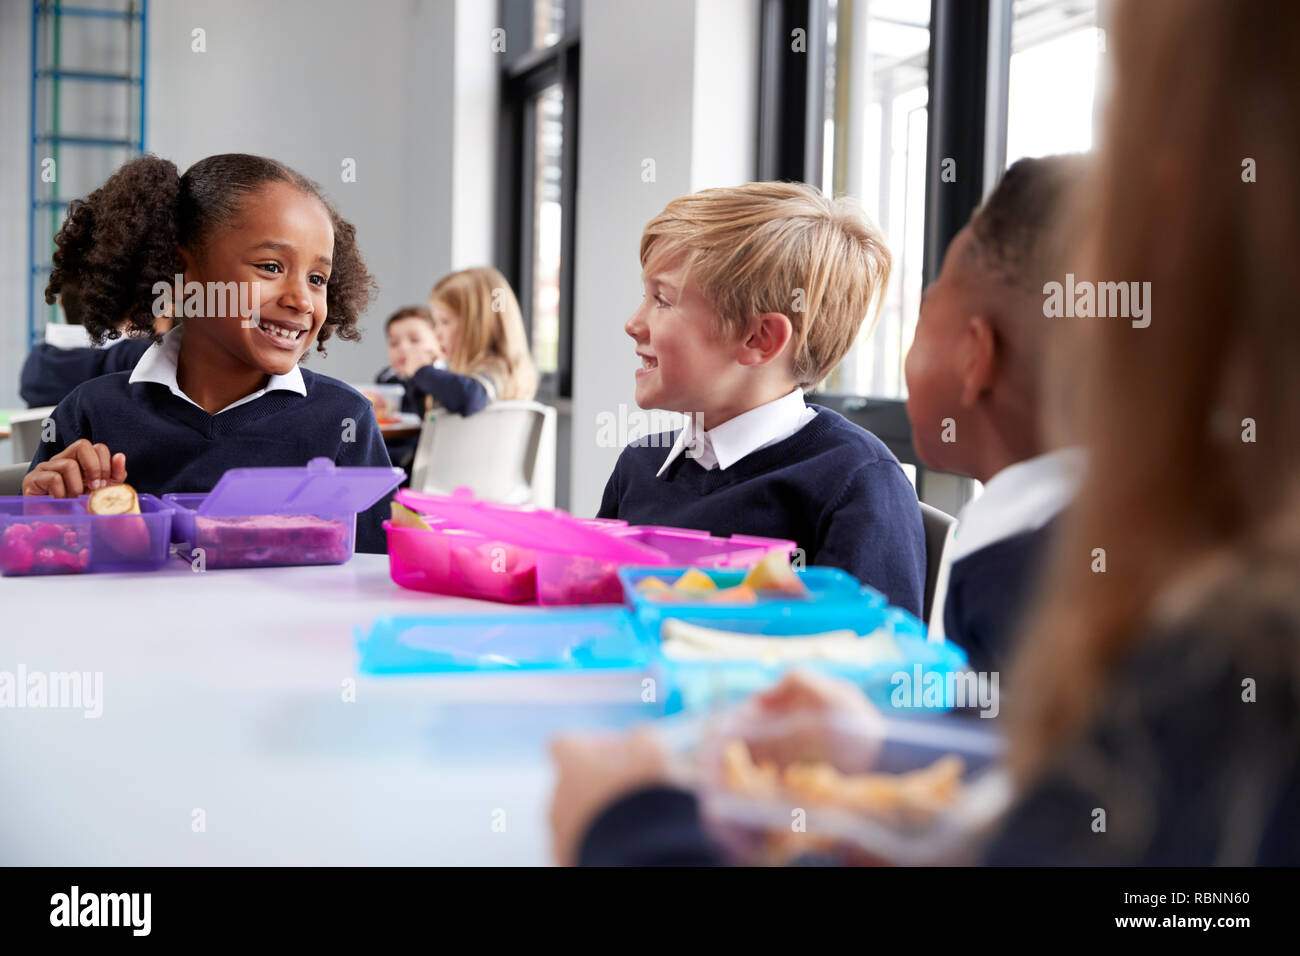 Primary school kids sitting at table eating their packed lunches and talking, close up - Stock Image